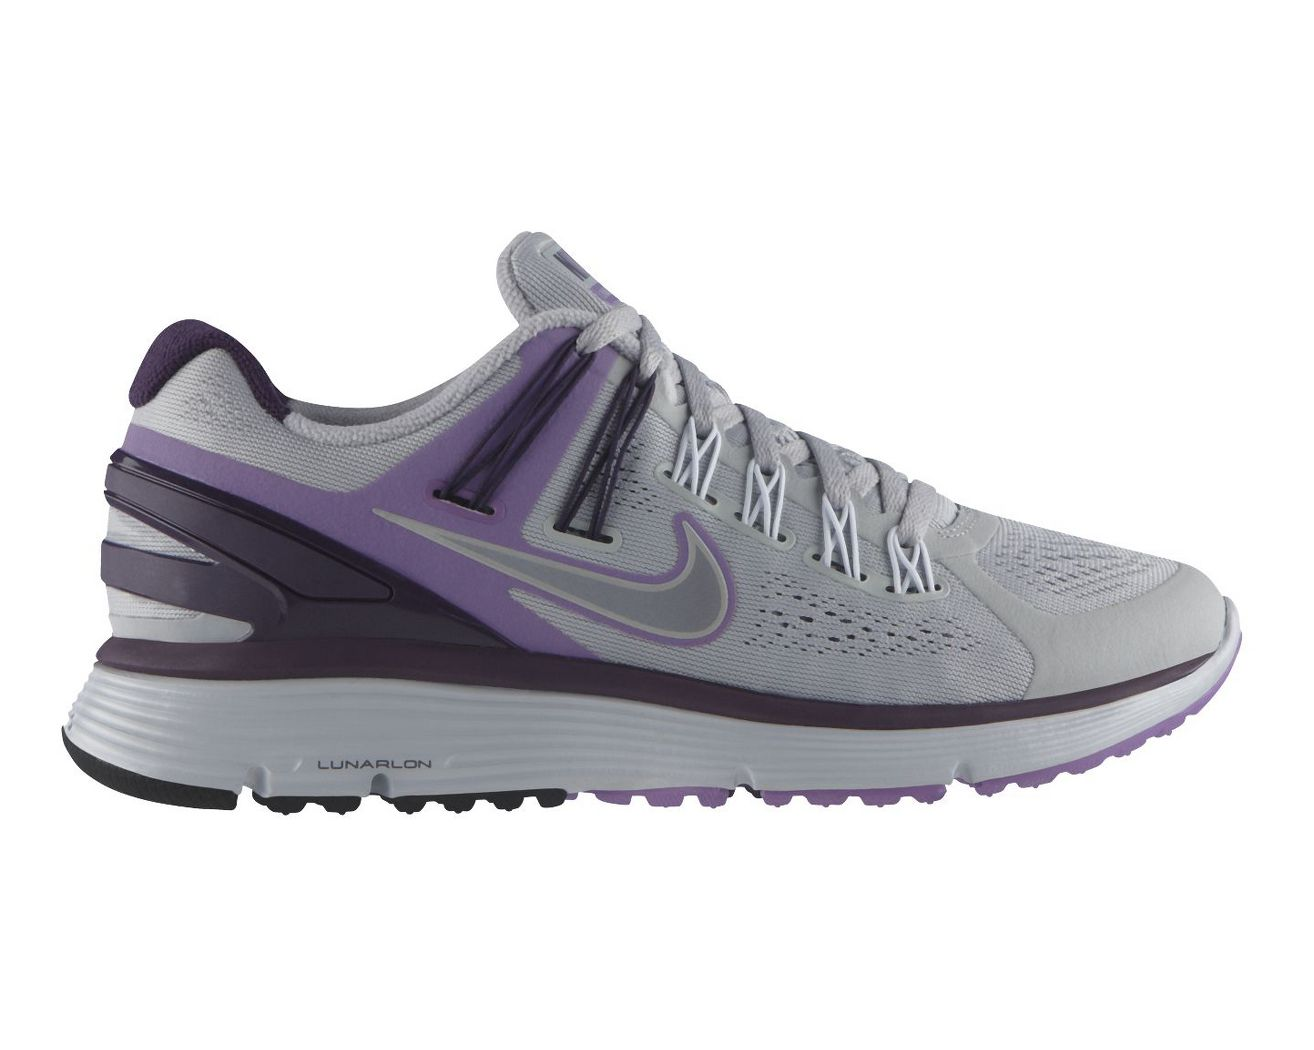 Nike lunar eclipse 2013 nike - Mouse Over To Zoom